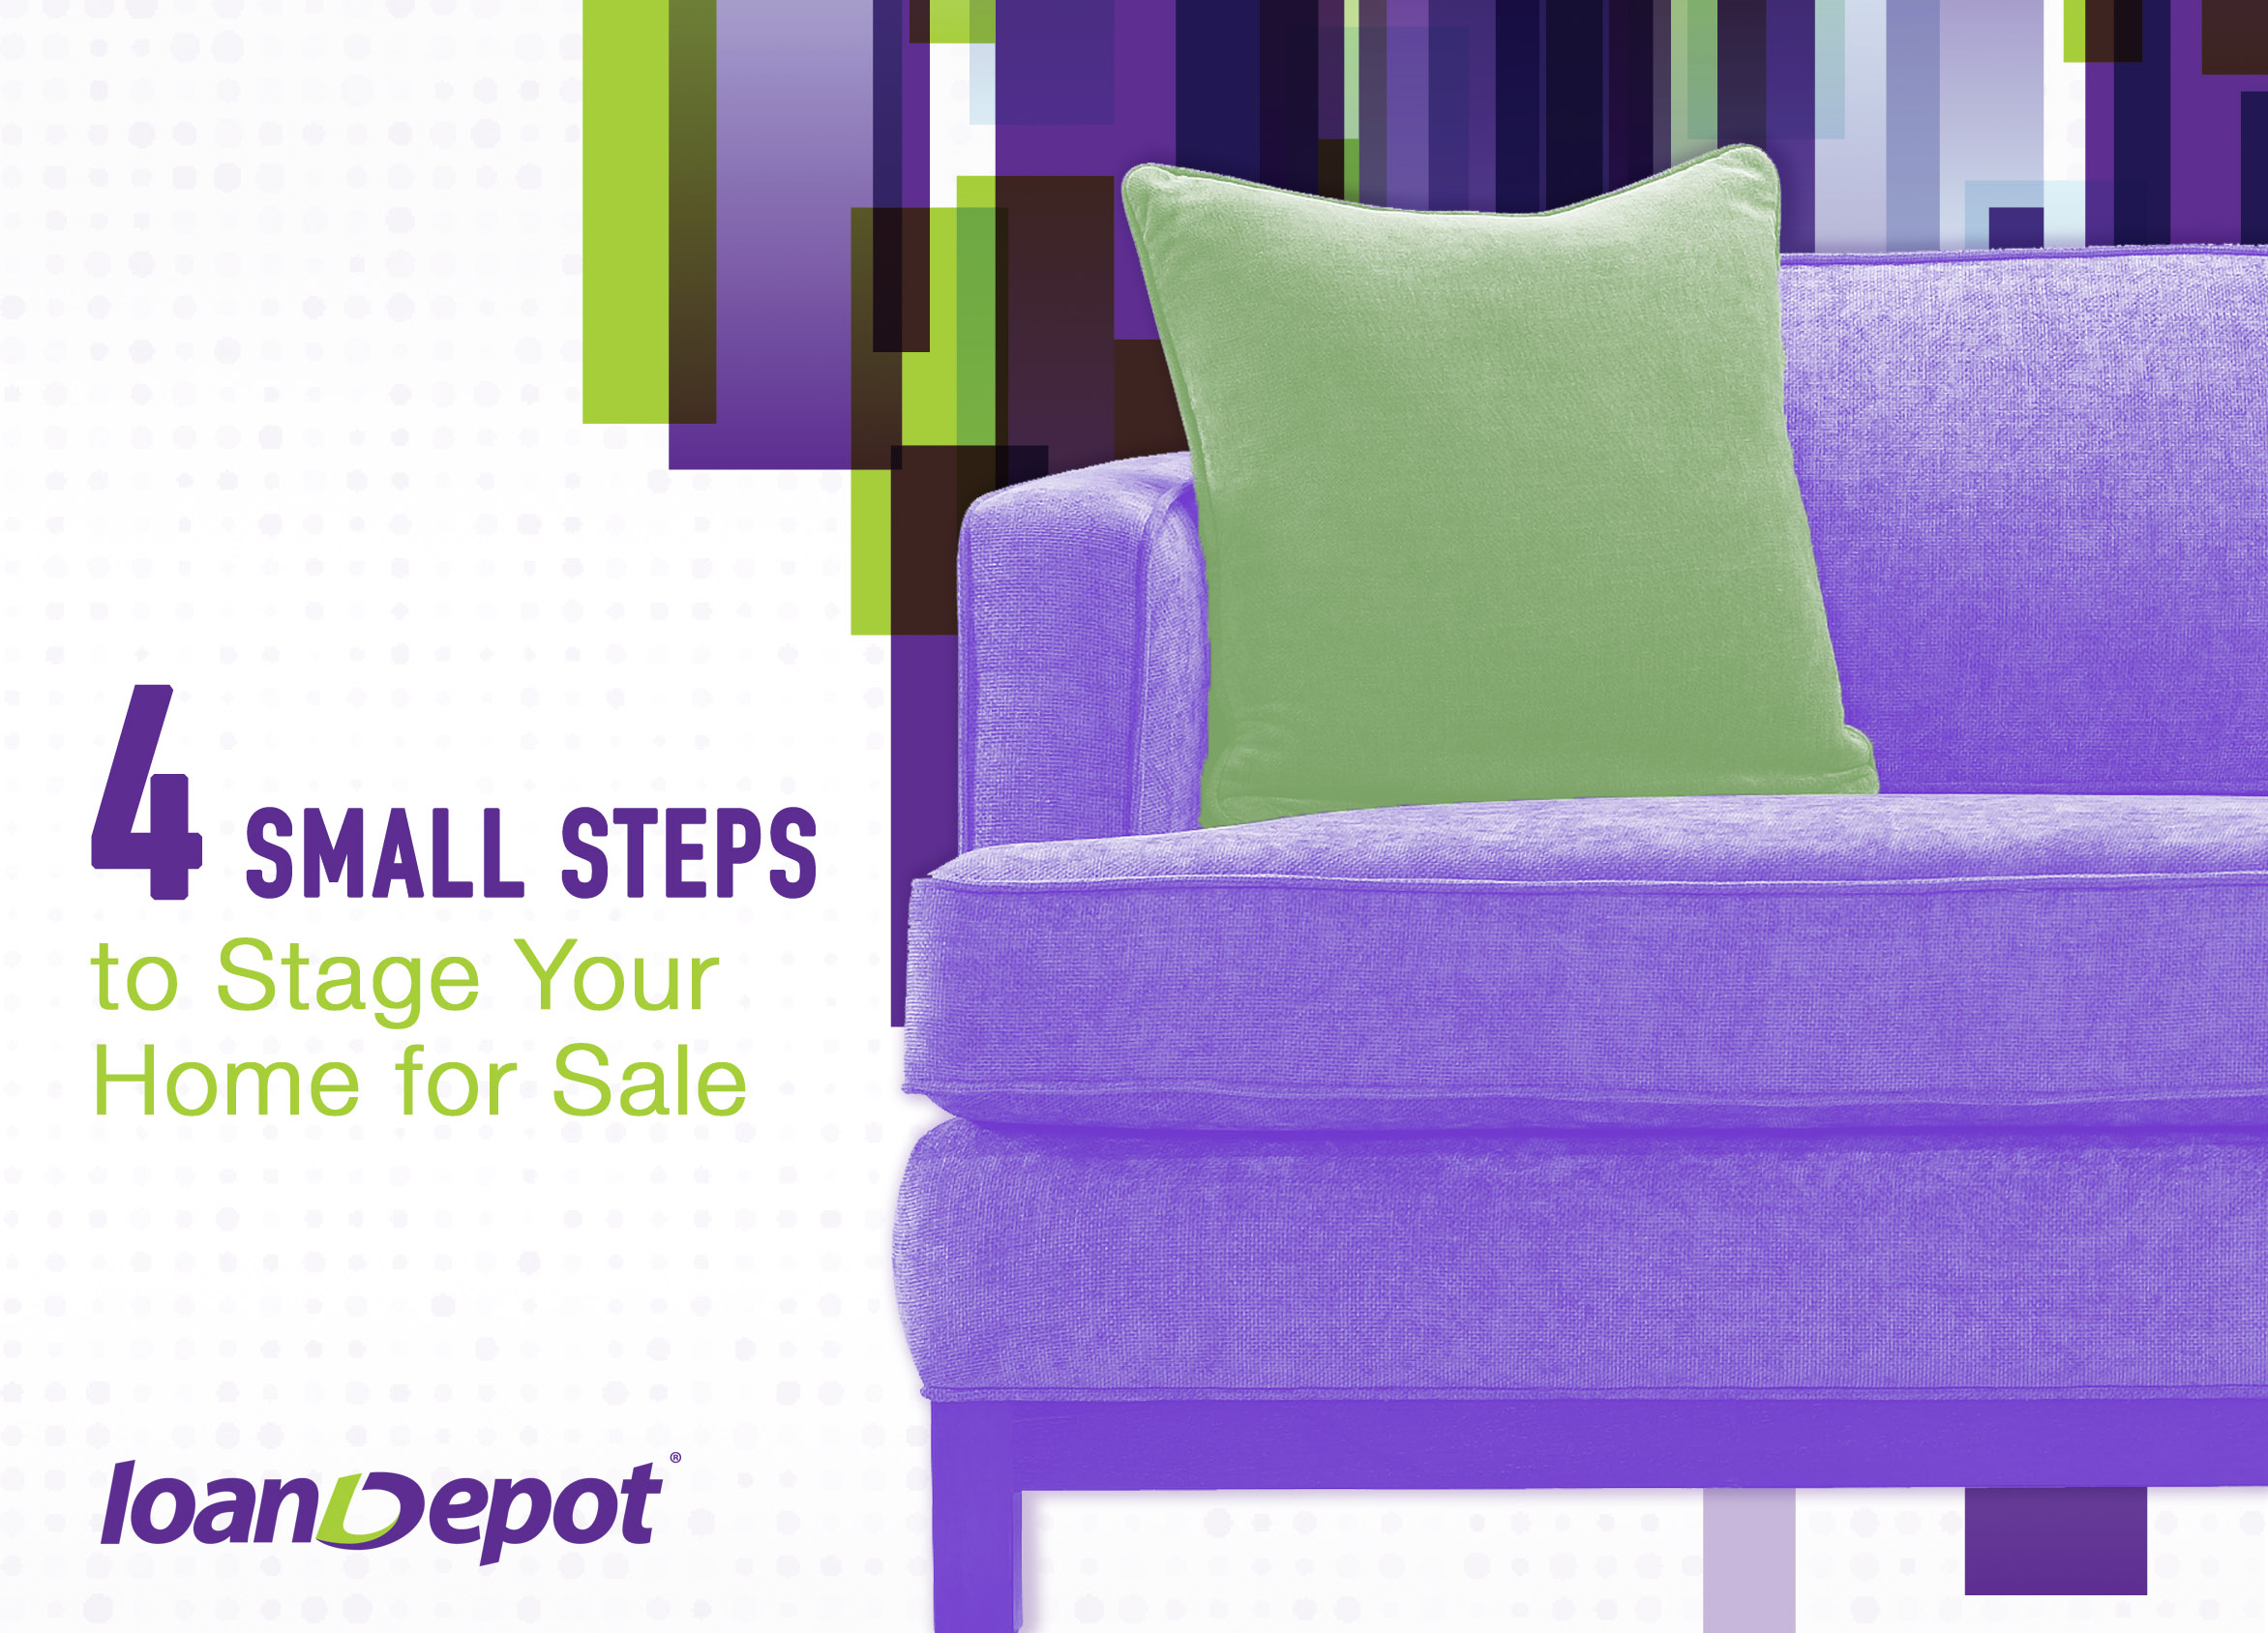 4 Small Steps to Stage Your Home for Sale